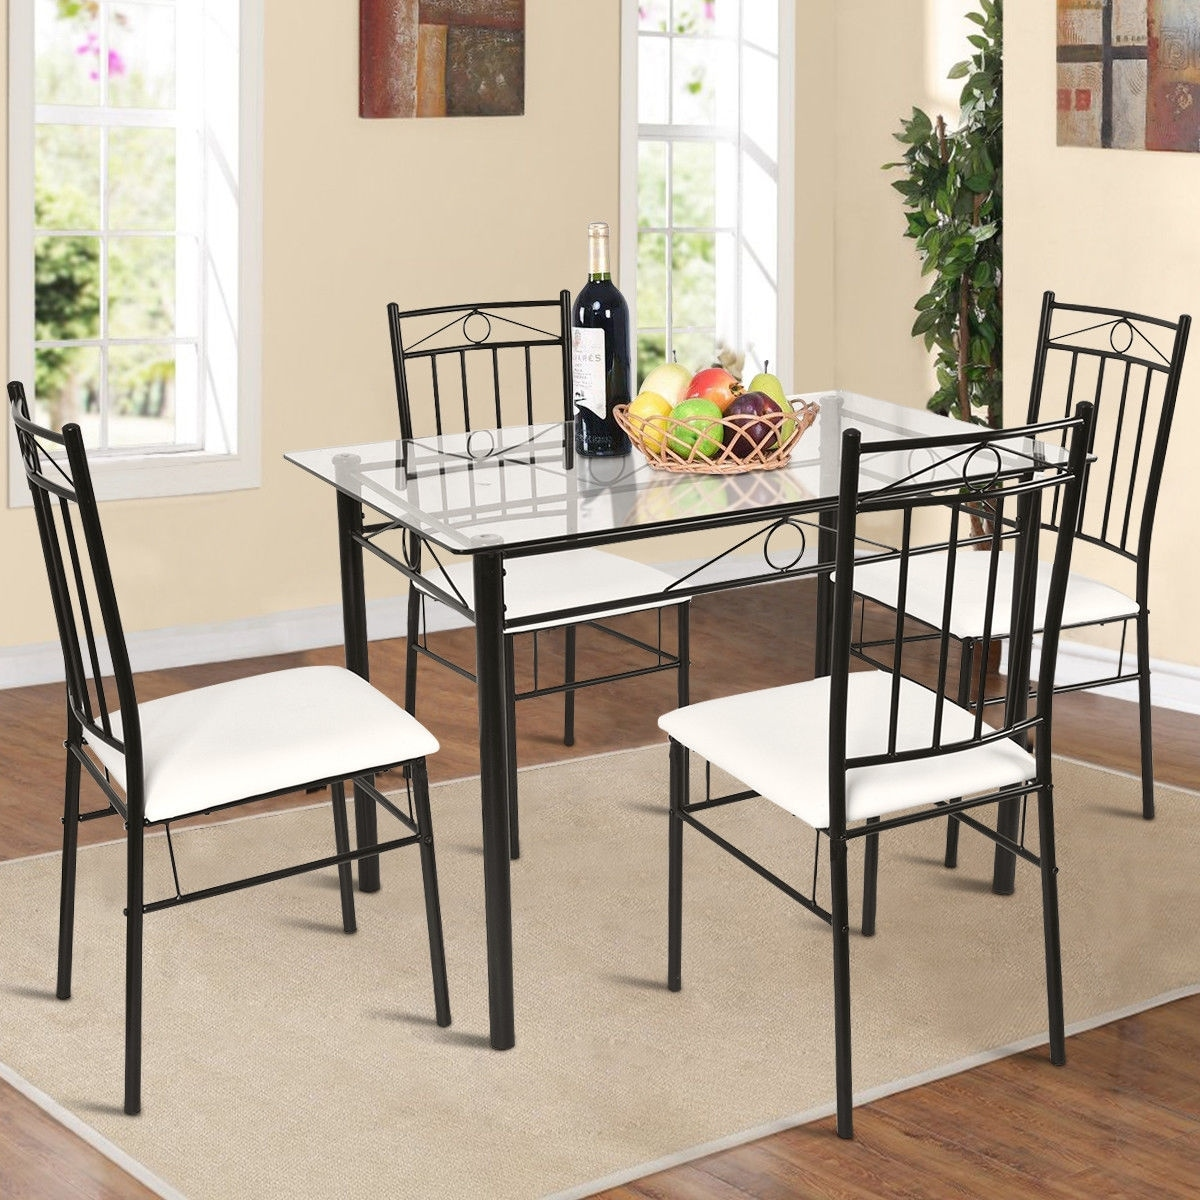 Breakfast Chairs Costway 5 Piece Dining Set Glass Metal Table And 4 Chairs Kitchen Breakfast Furniture Black